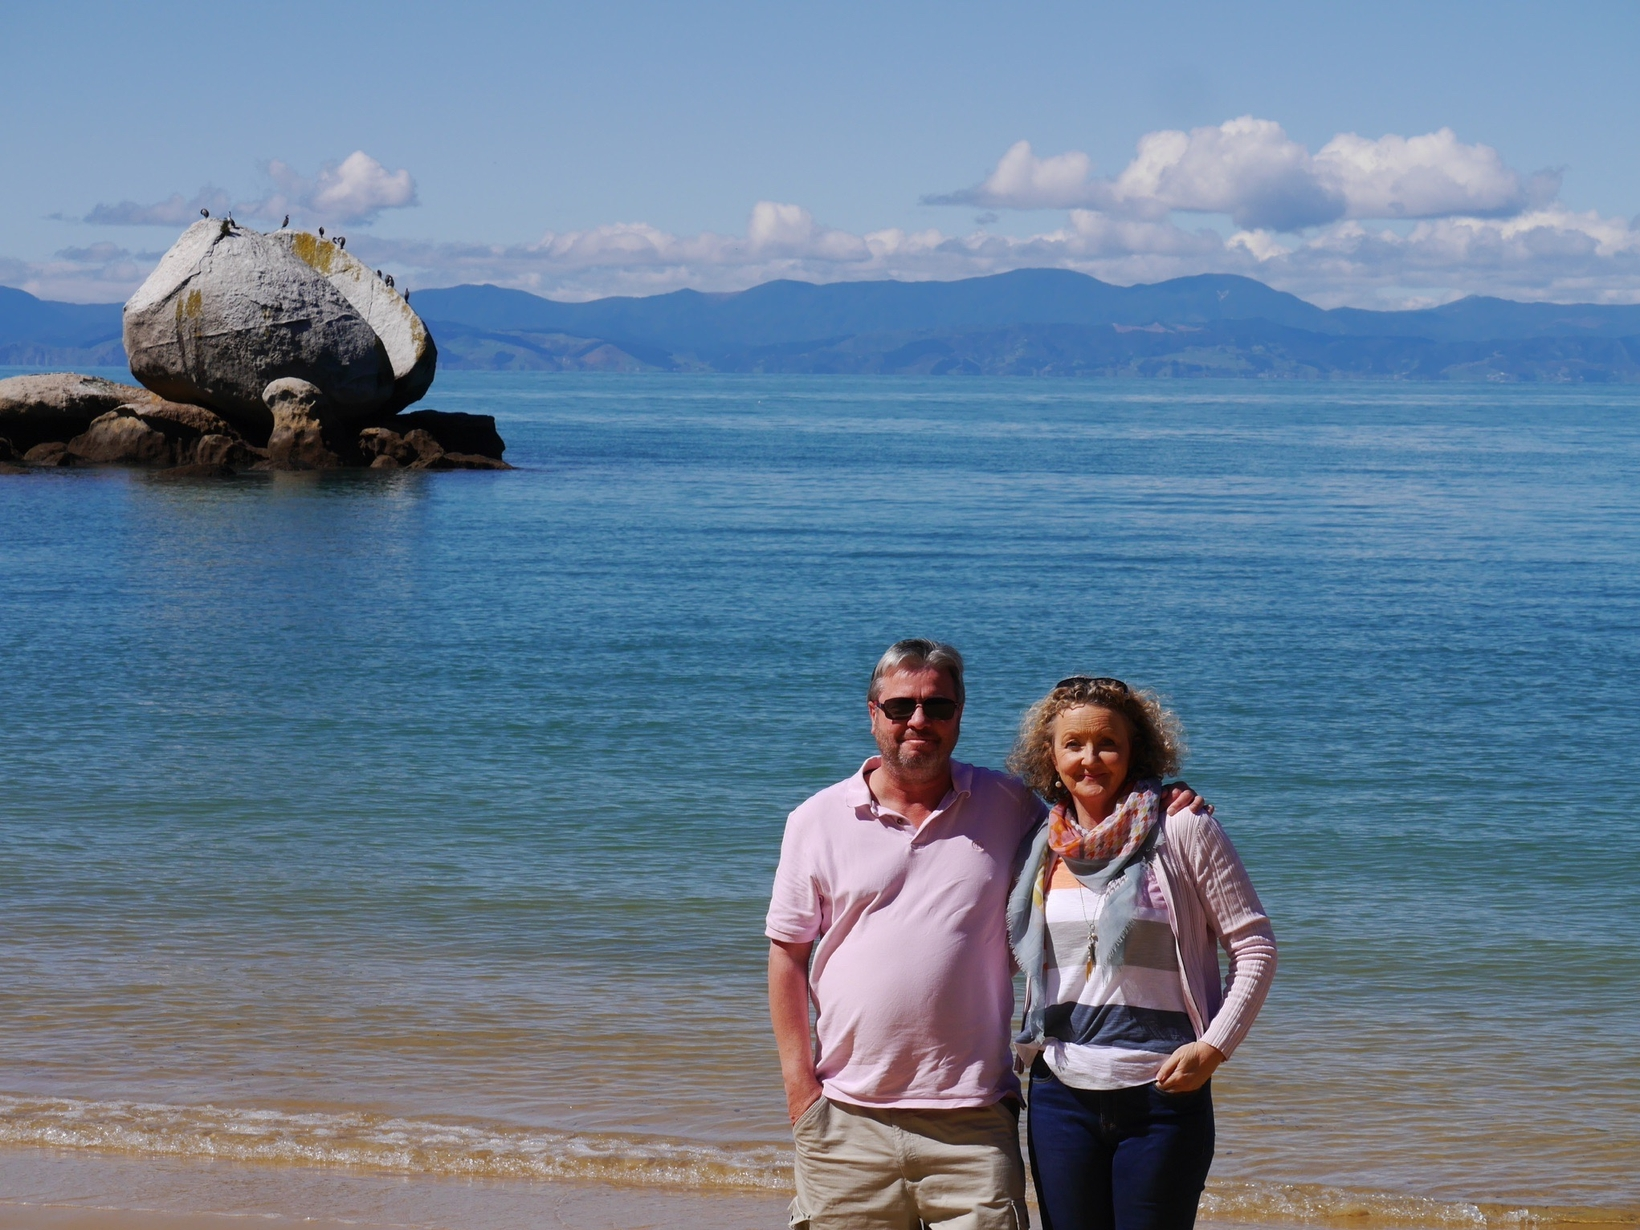 Tricia and matt & Matt from Nelson, New Zealand